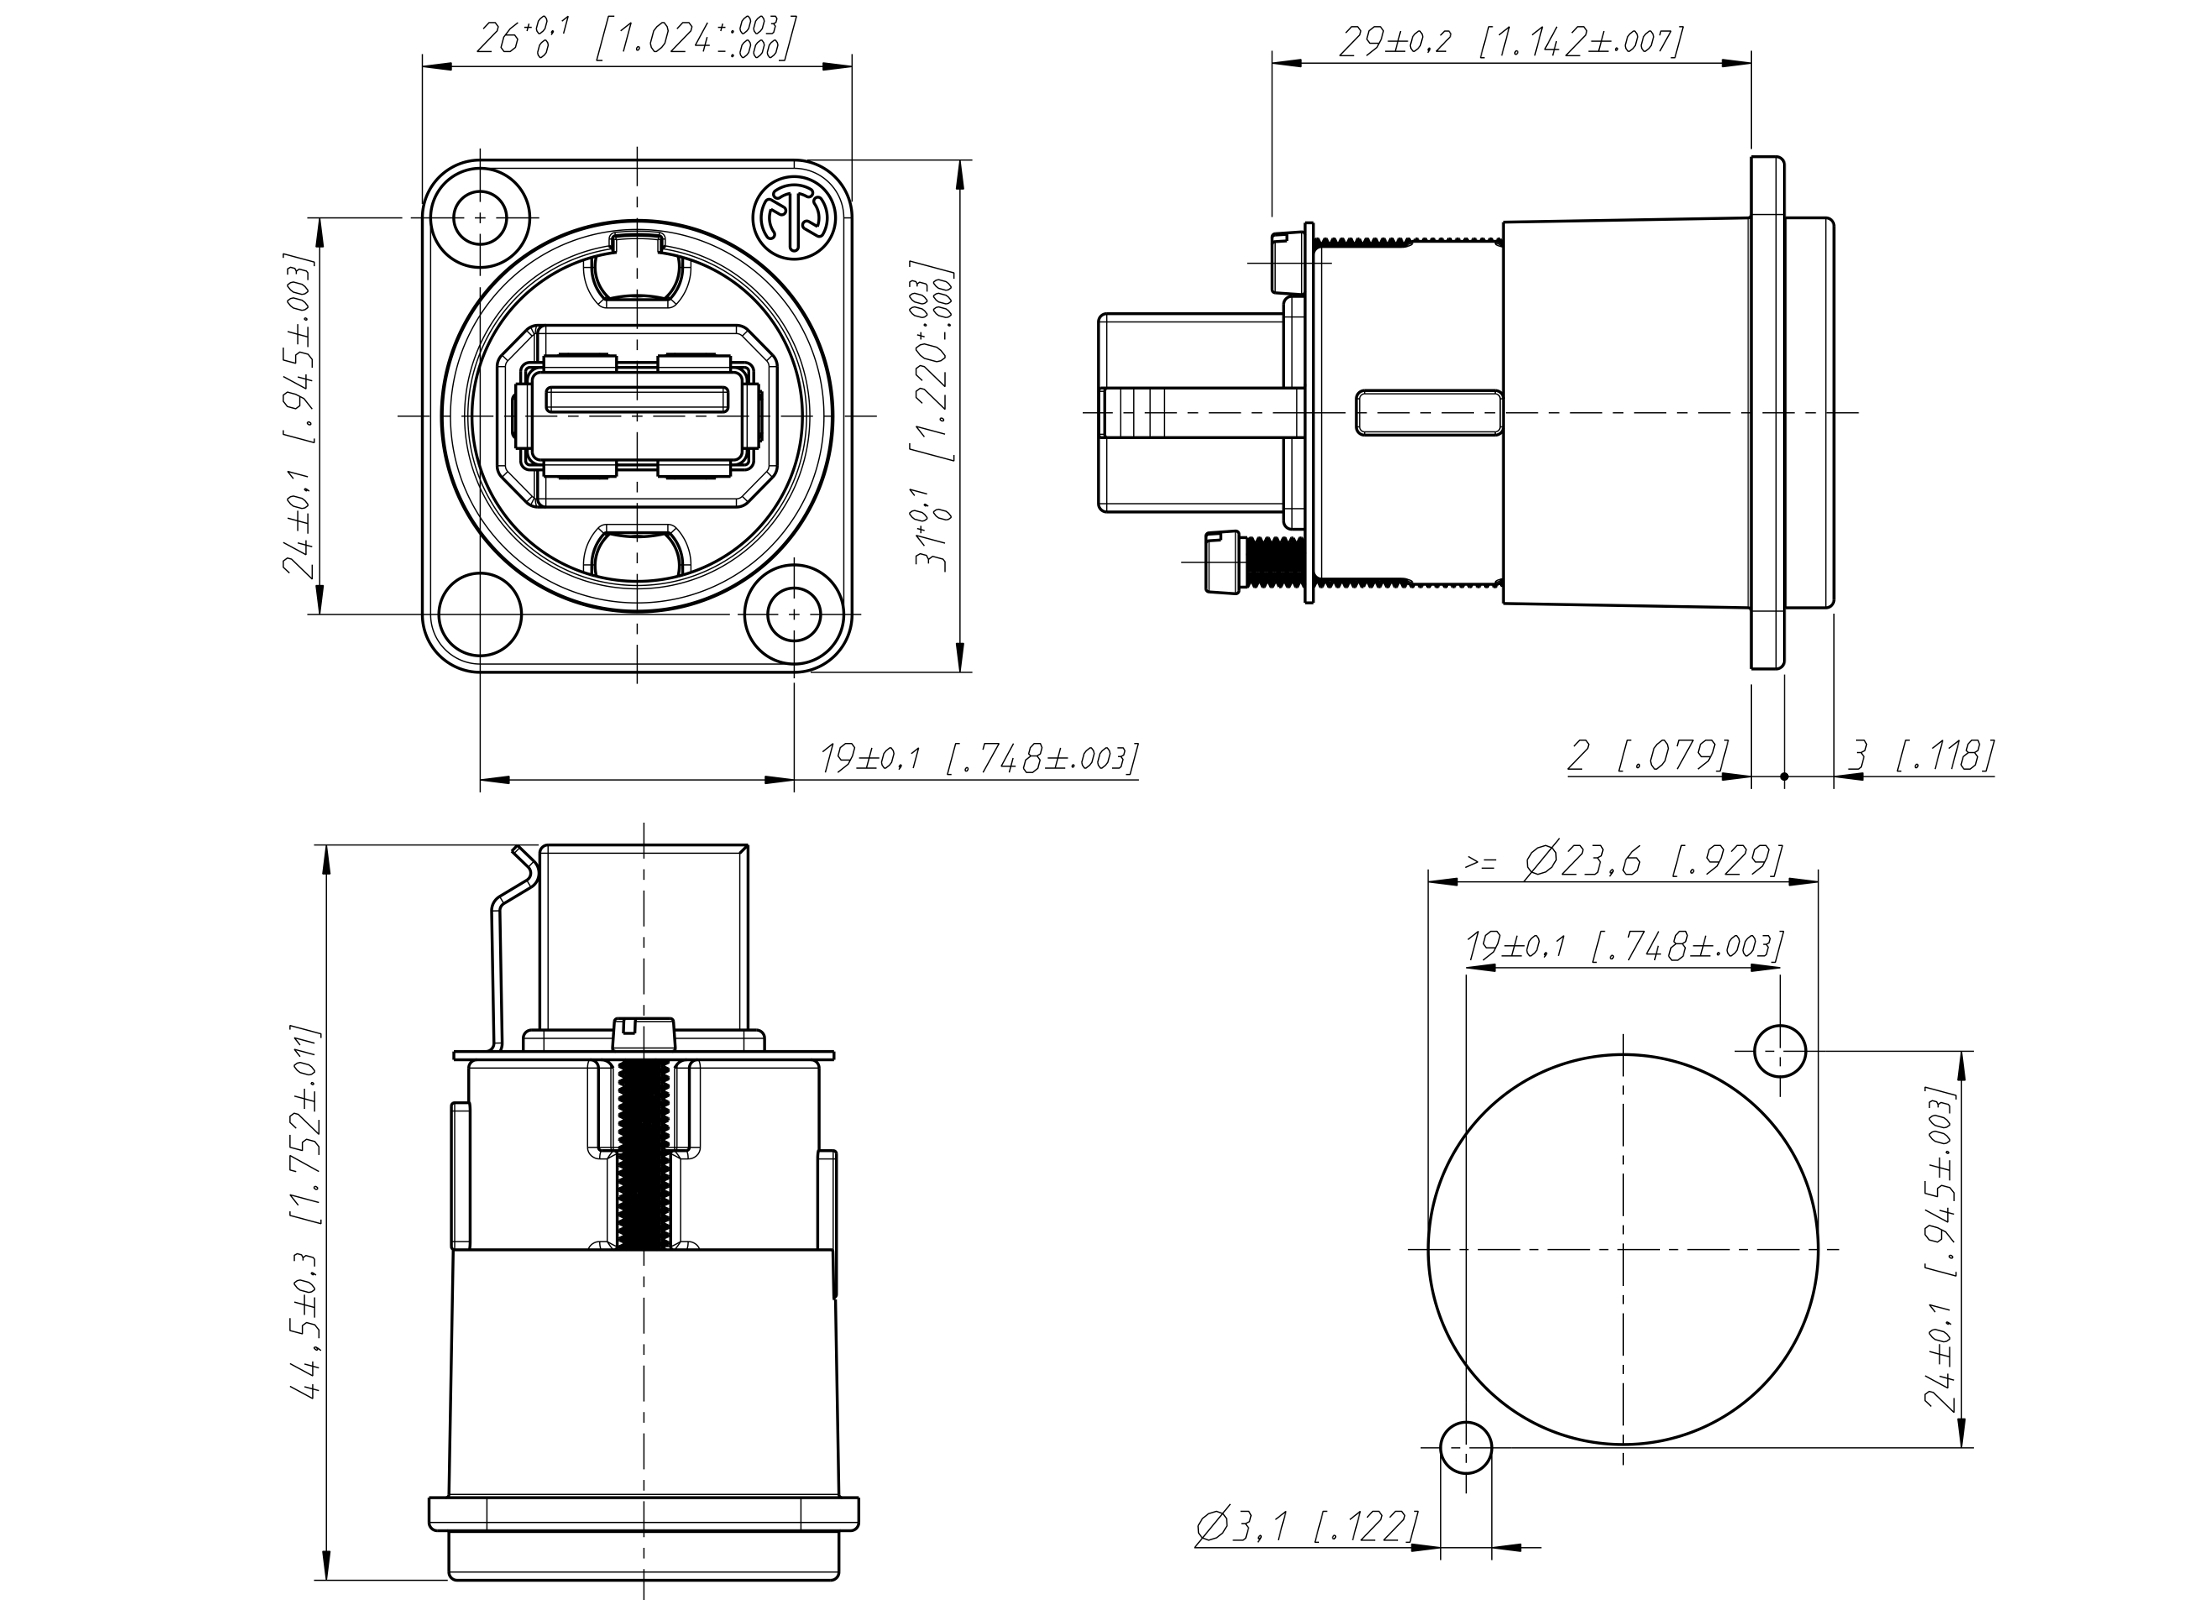 Audio Connector Schematic